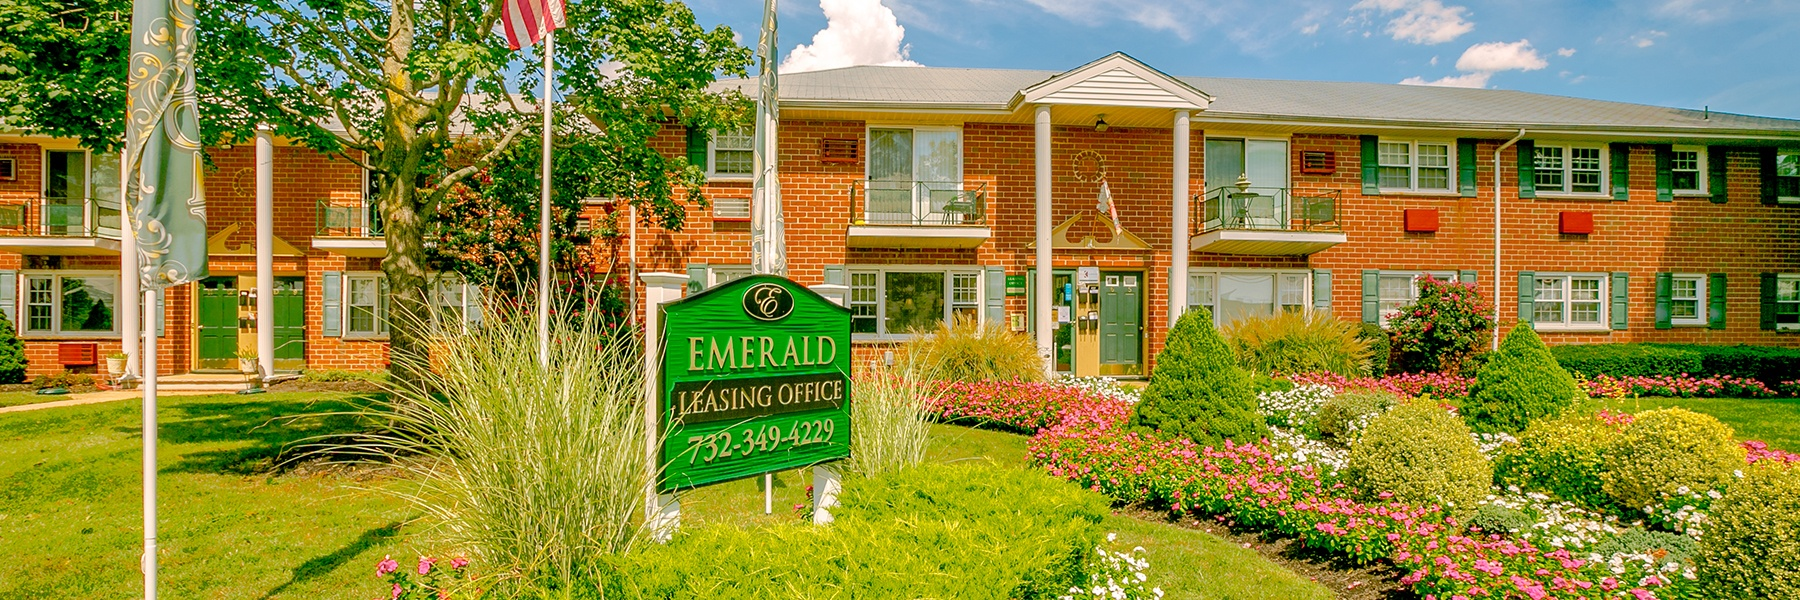 Emerald Apartments For Rent in Toms River, NJ Welcome